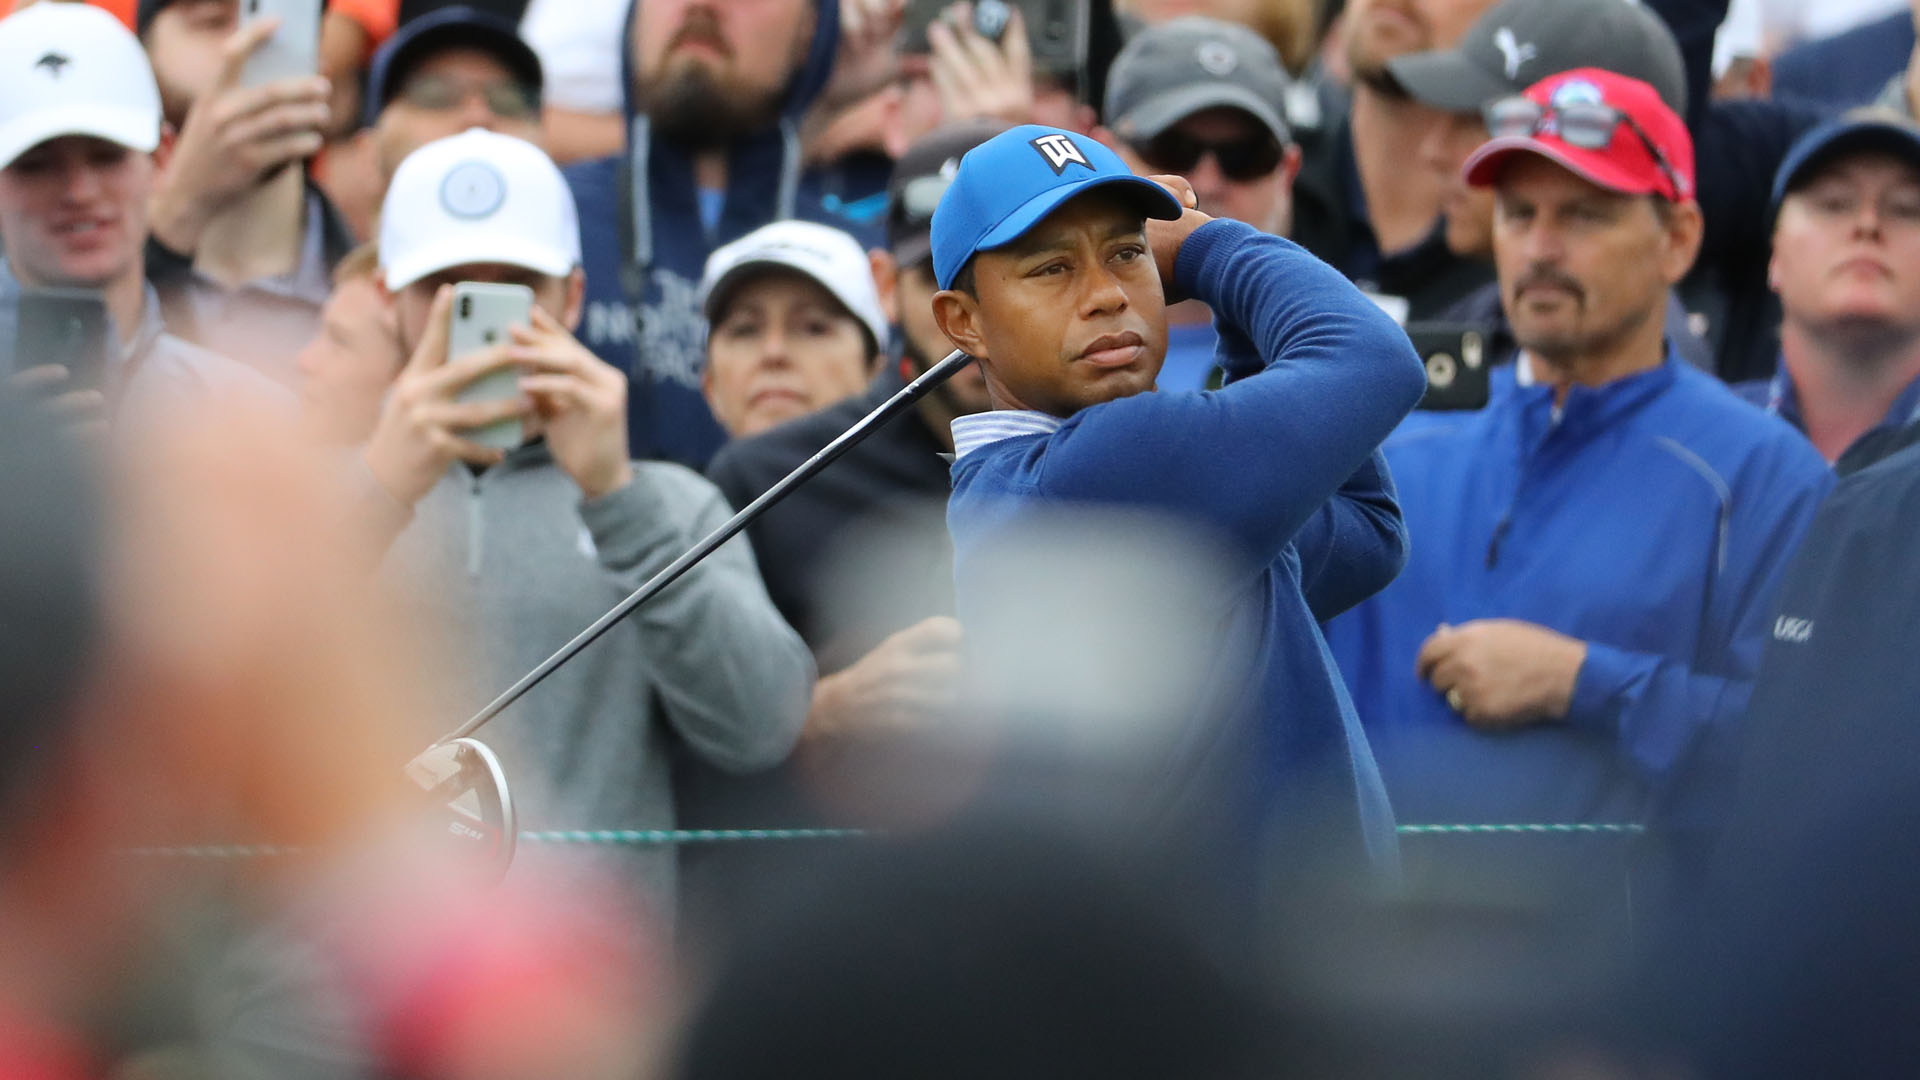 I'm a little hot right now – Tiger Woods fuming after bogey-bogey finish